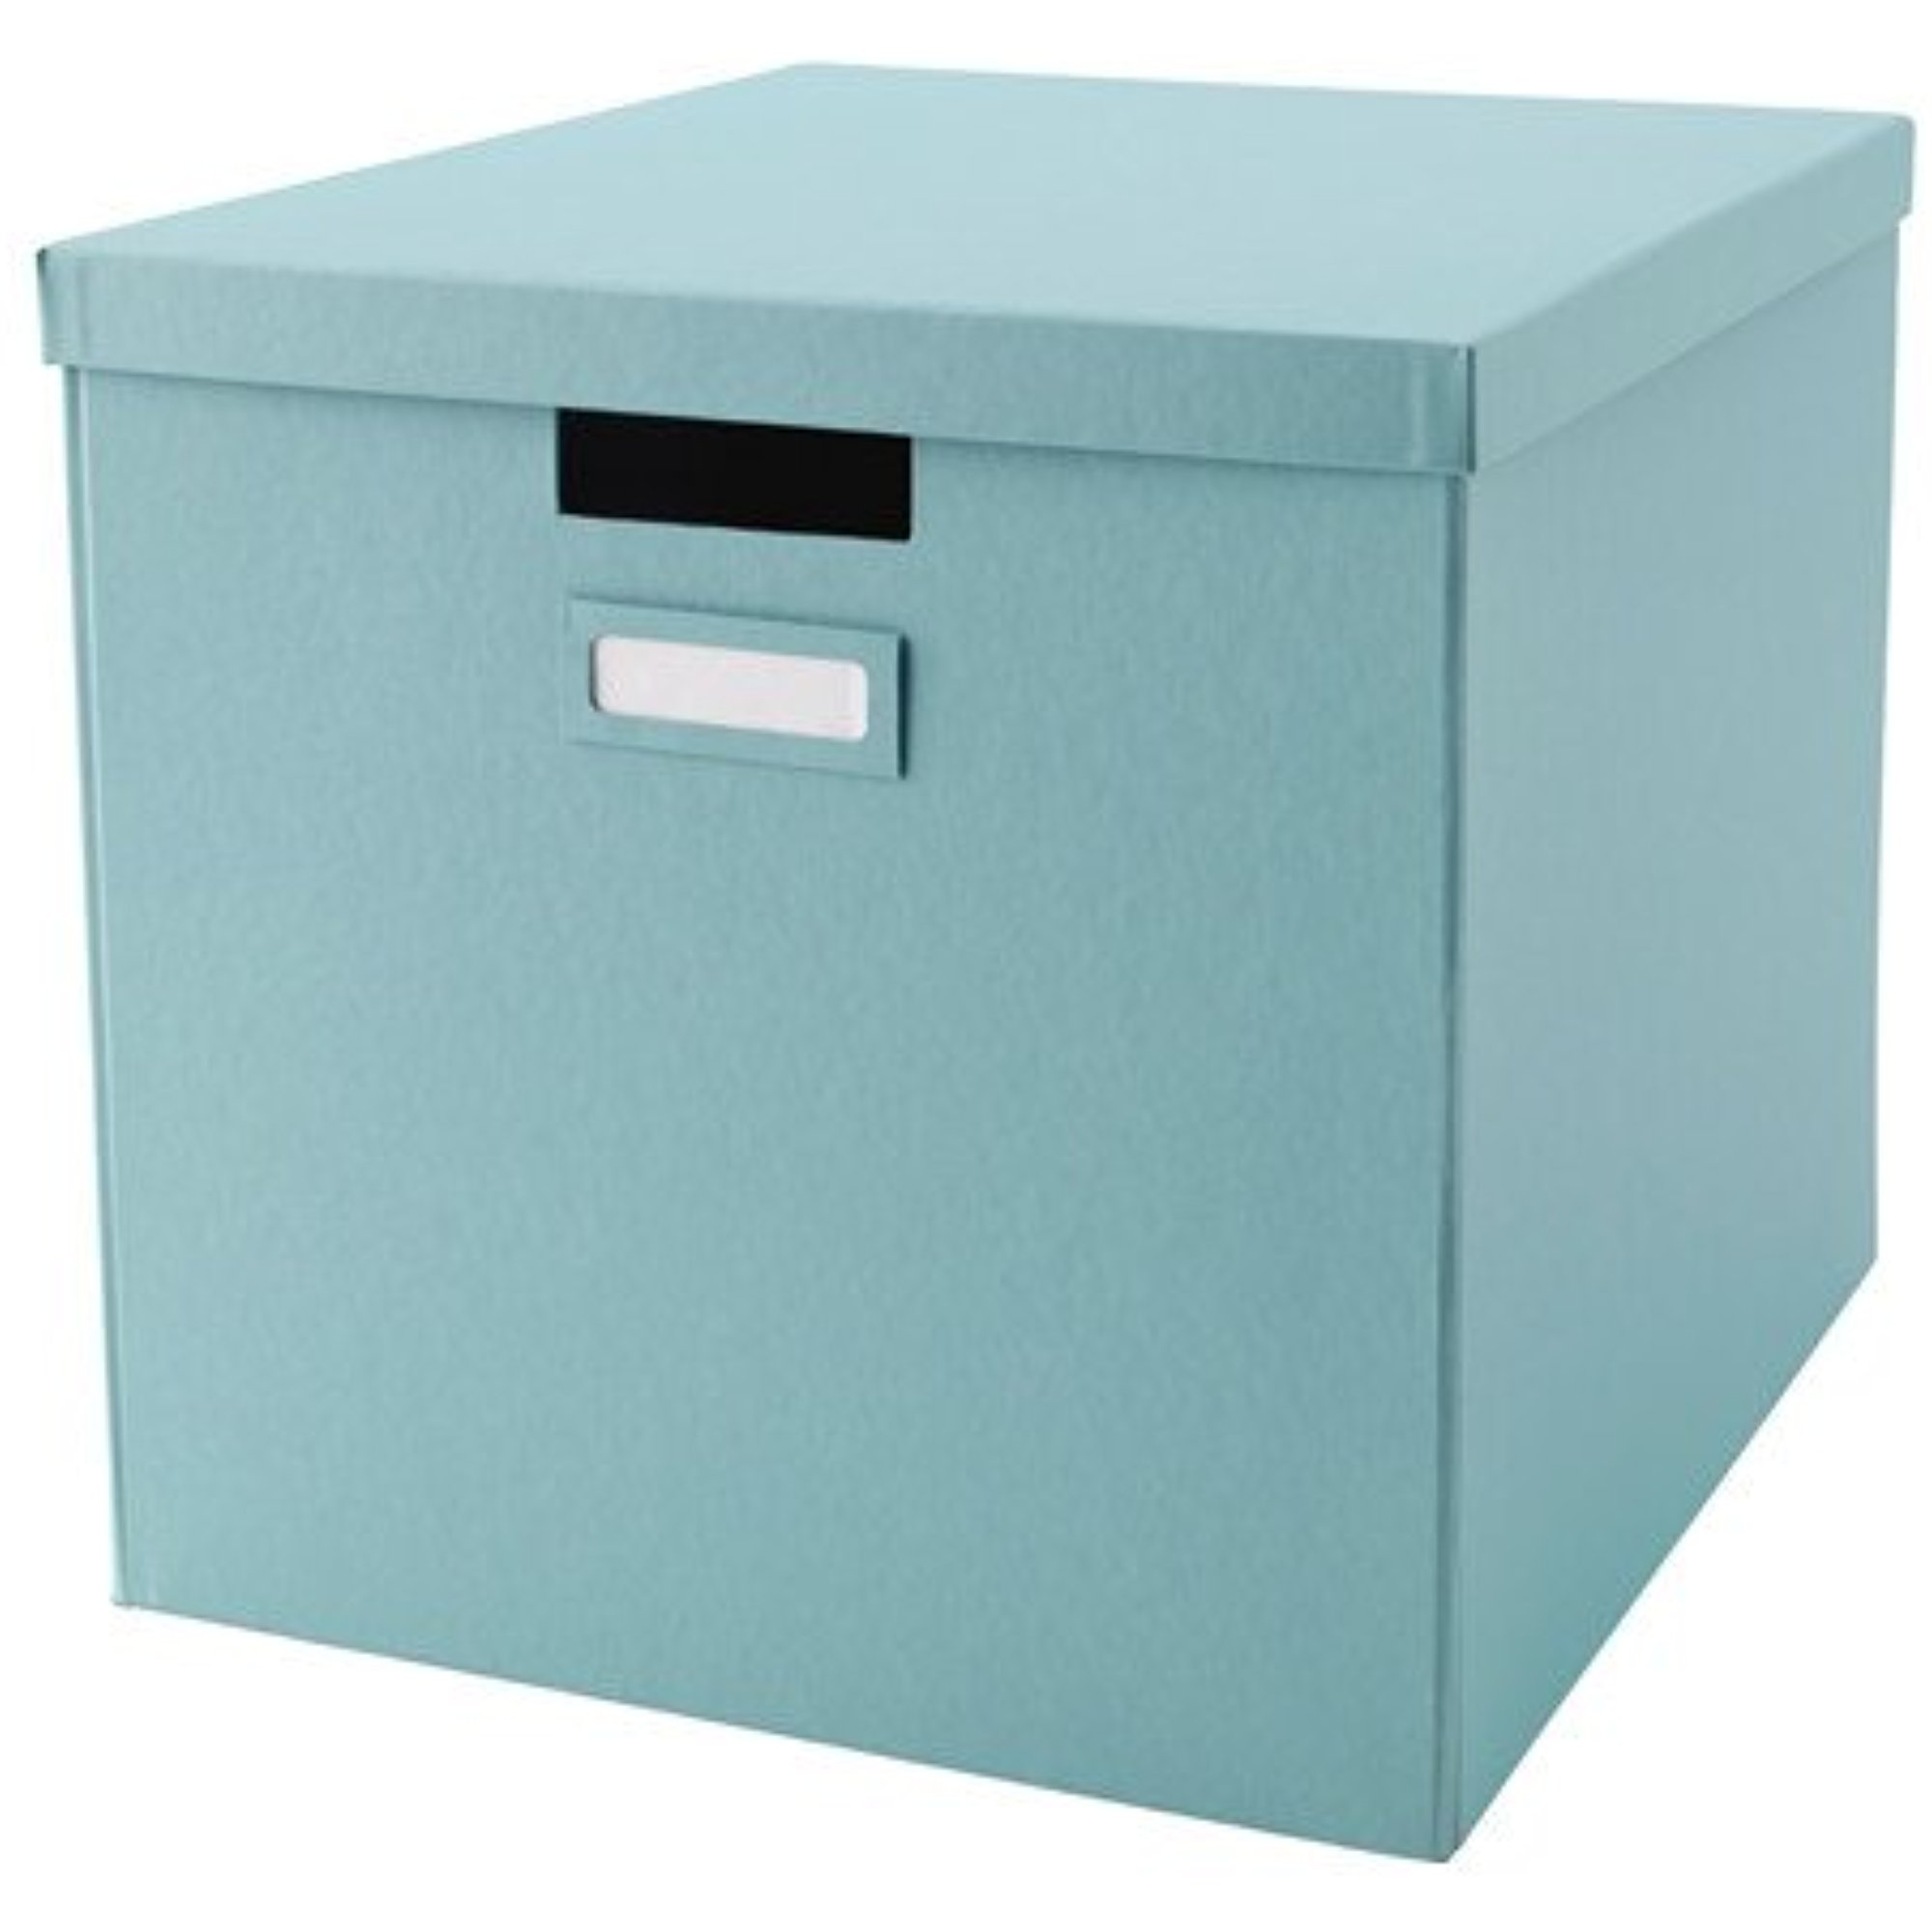 Ikea Box Holder Ikea Storage Box With Lid Light Blue 14214 81123 186